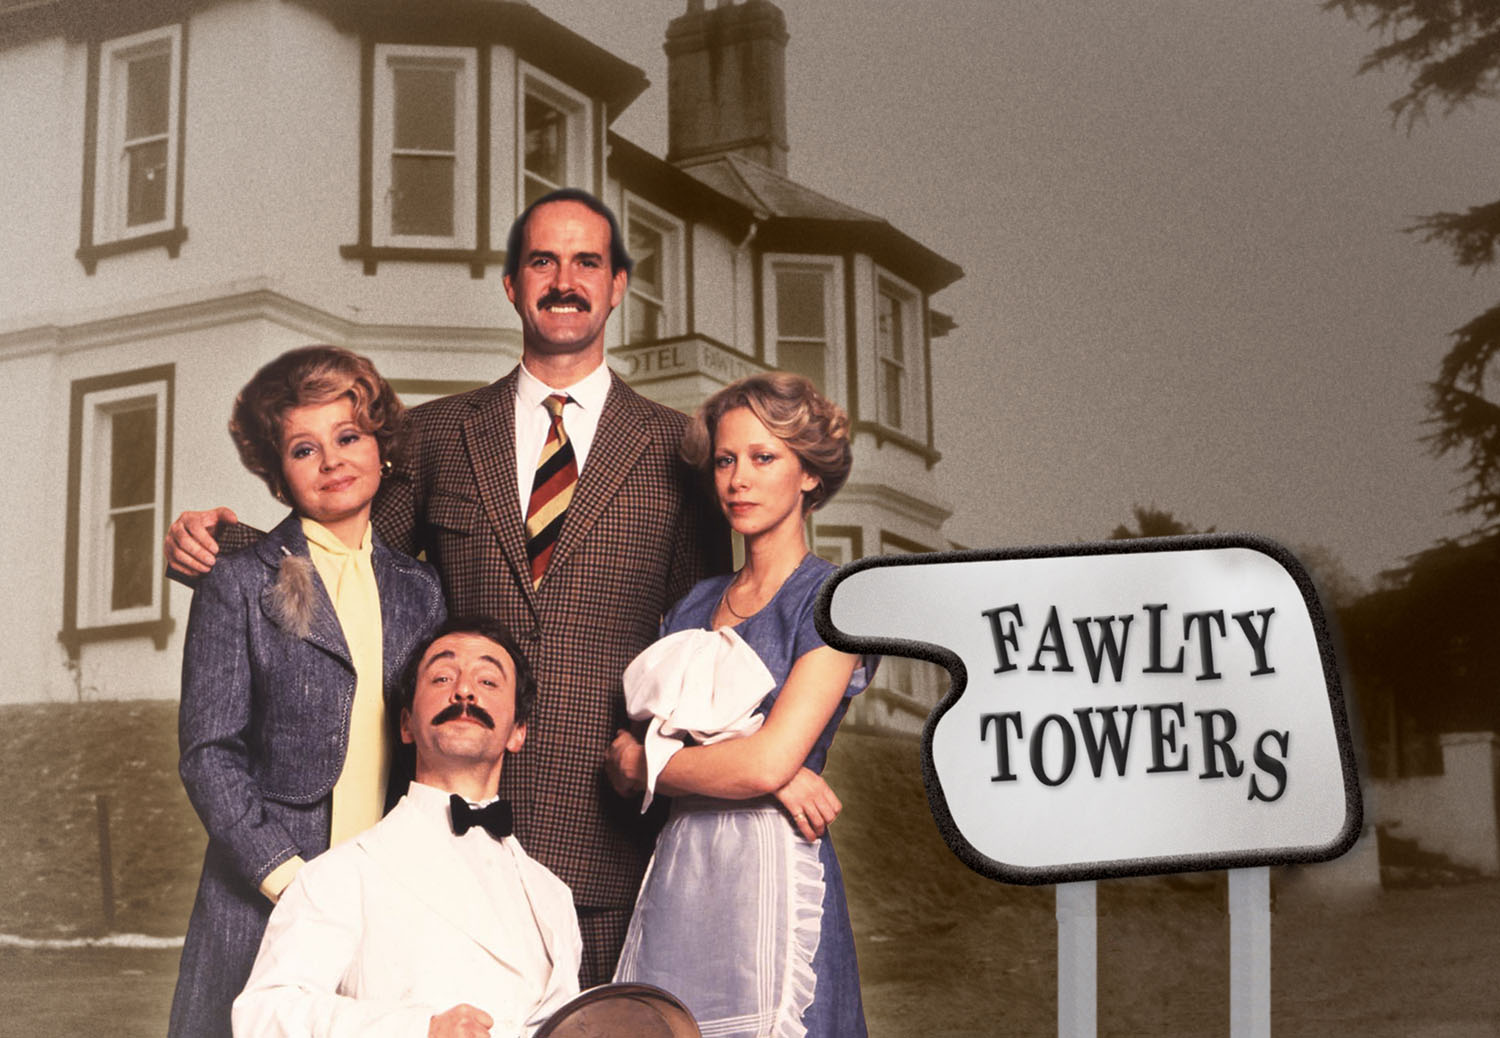 Fawlty Towers Image with the Four Main Characters